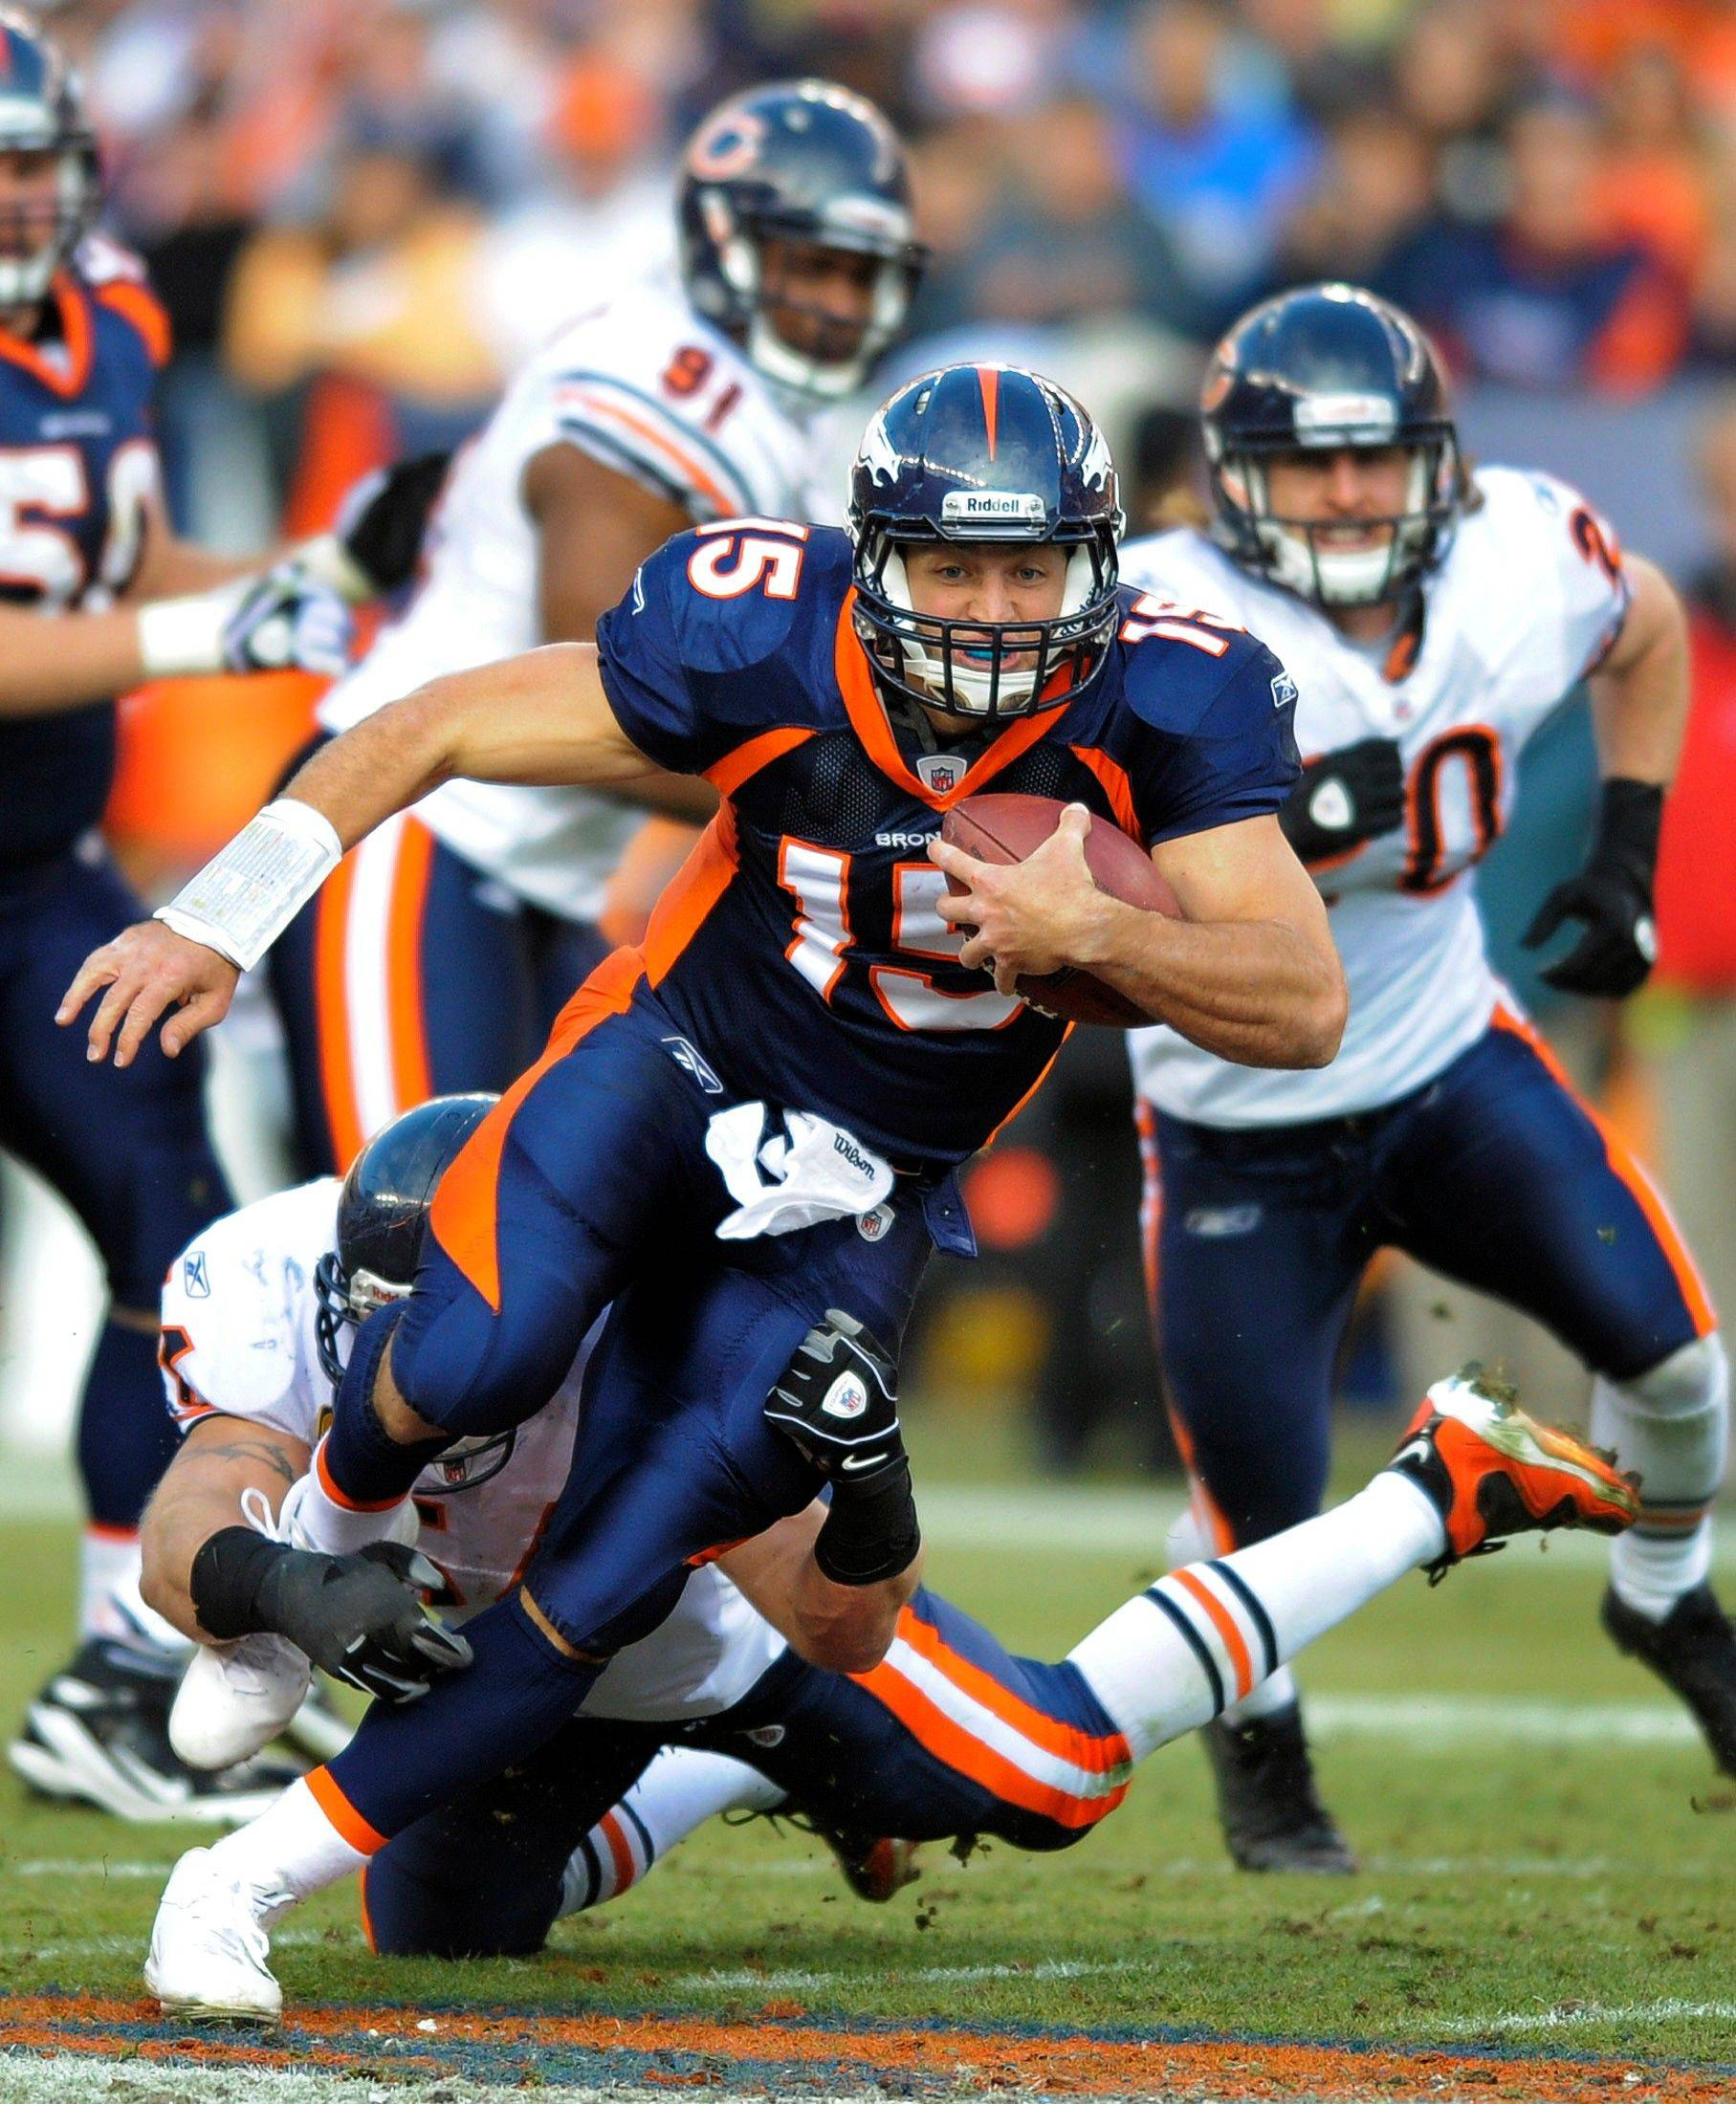 Denver Broncos quarterback Tim Tebow (15) is hit by Chicago Bears middle linebacker Brian Urlacher (54) as he runs for a first down in the second quarter.